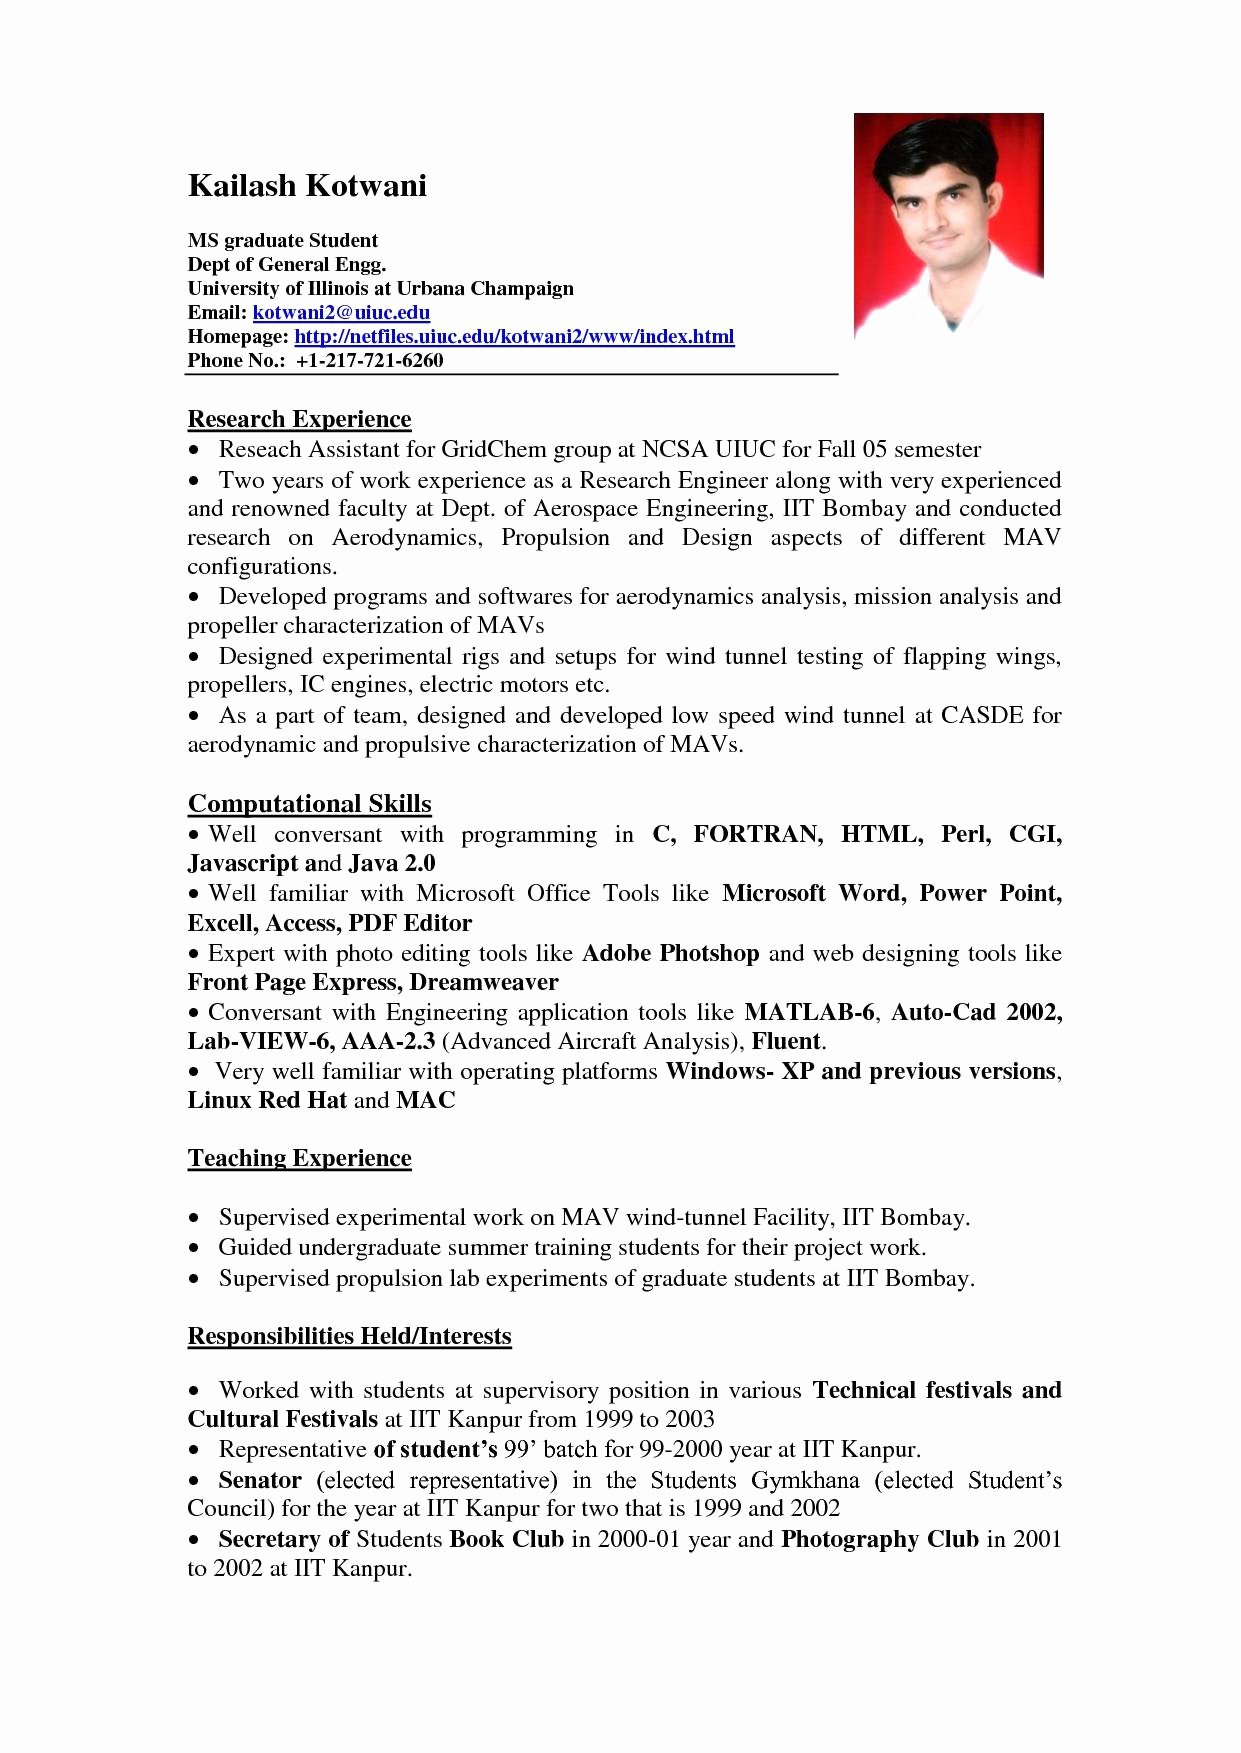 New Job Hopping Resume Example – St Resume and